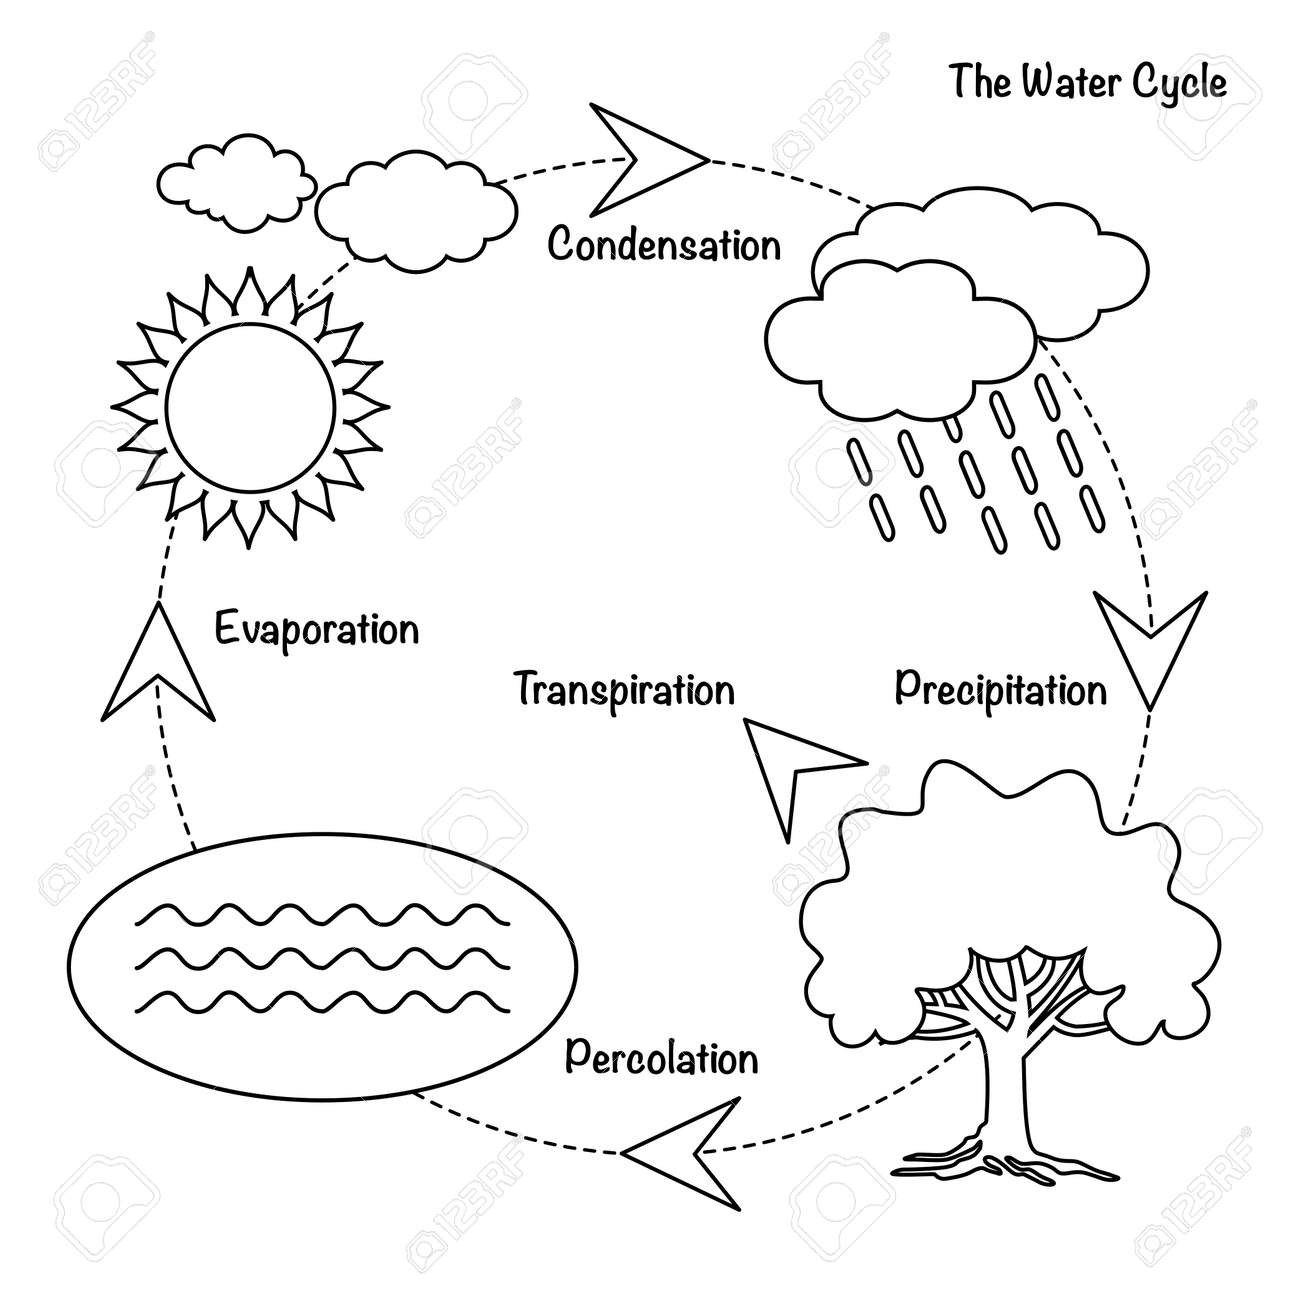 hight resolution of schematic representation of the water cycle in nature illustration of diagram water cycle cycle